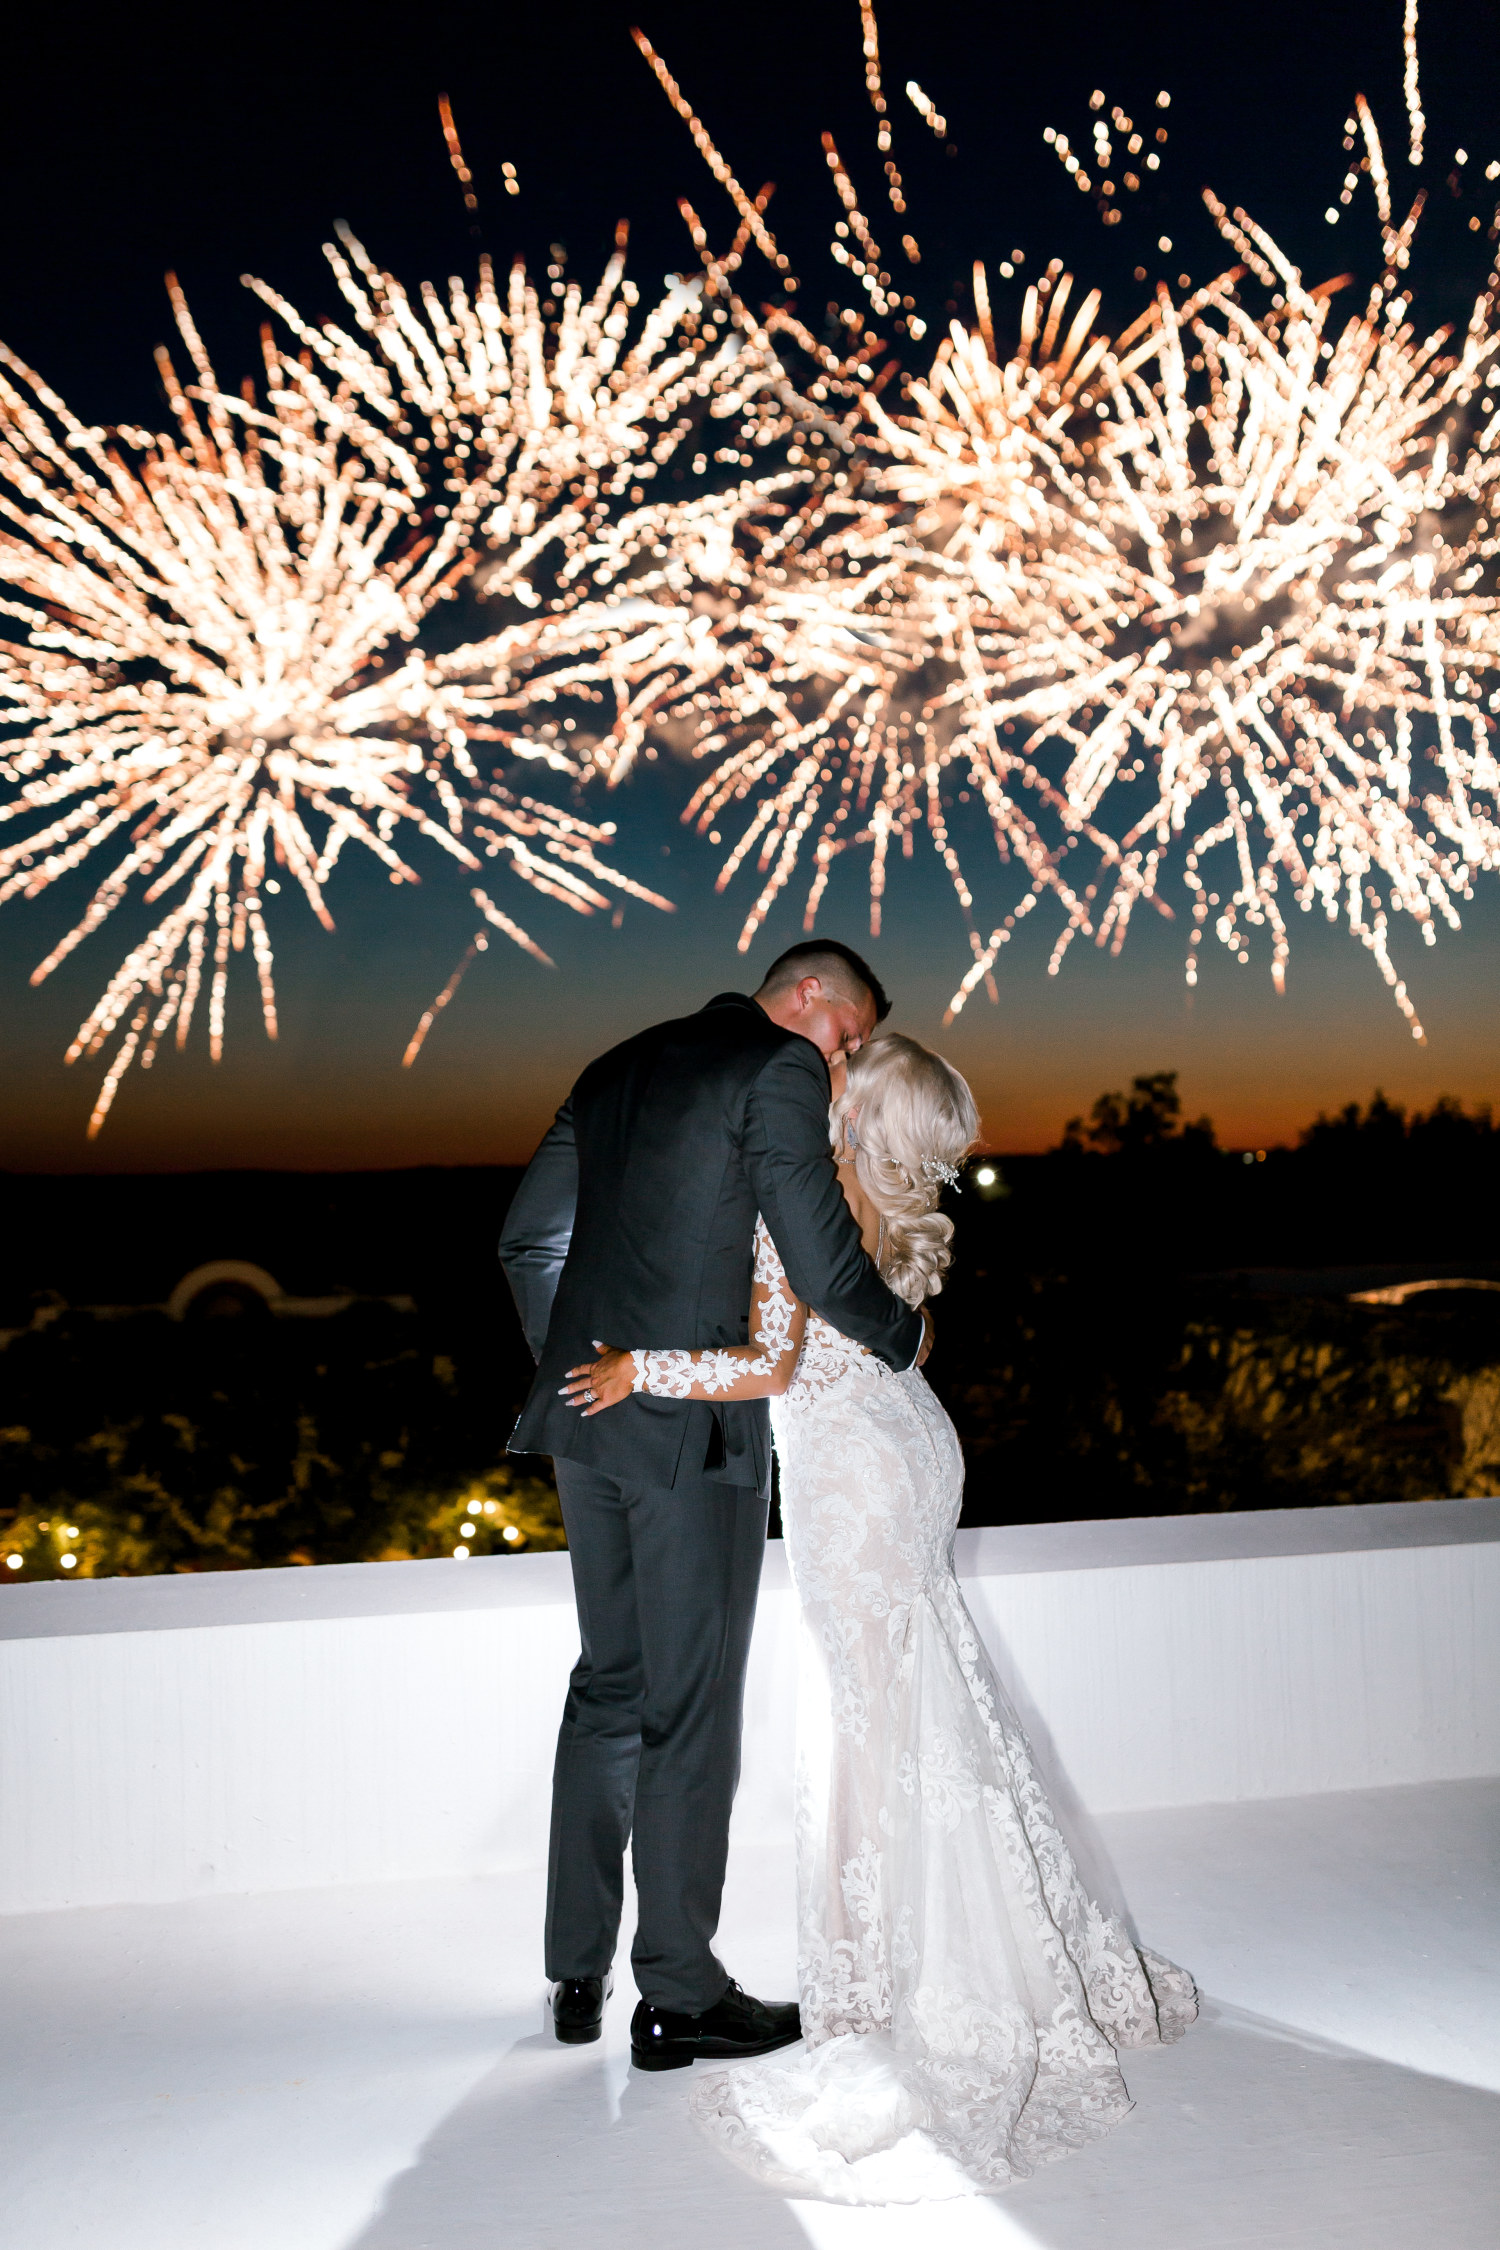 Hannah Way Photography - Dallas wedding photographer - luxury weddings - luxury wedding photographer - dfw wedding photographer - best wedding photographer - Dallas best wedding photographer - Stoney ridge villa - fireworks - grand exit - fireworks grand exit - prestotechnics